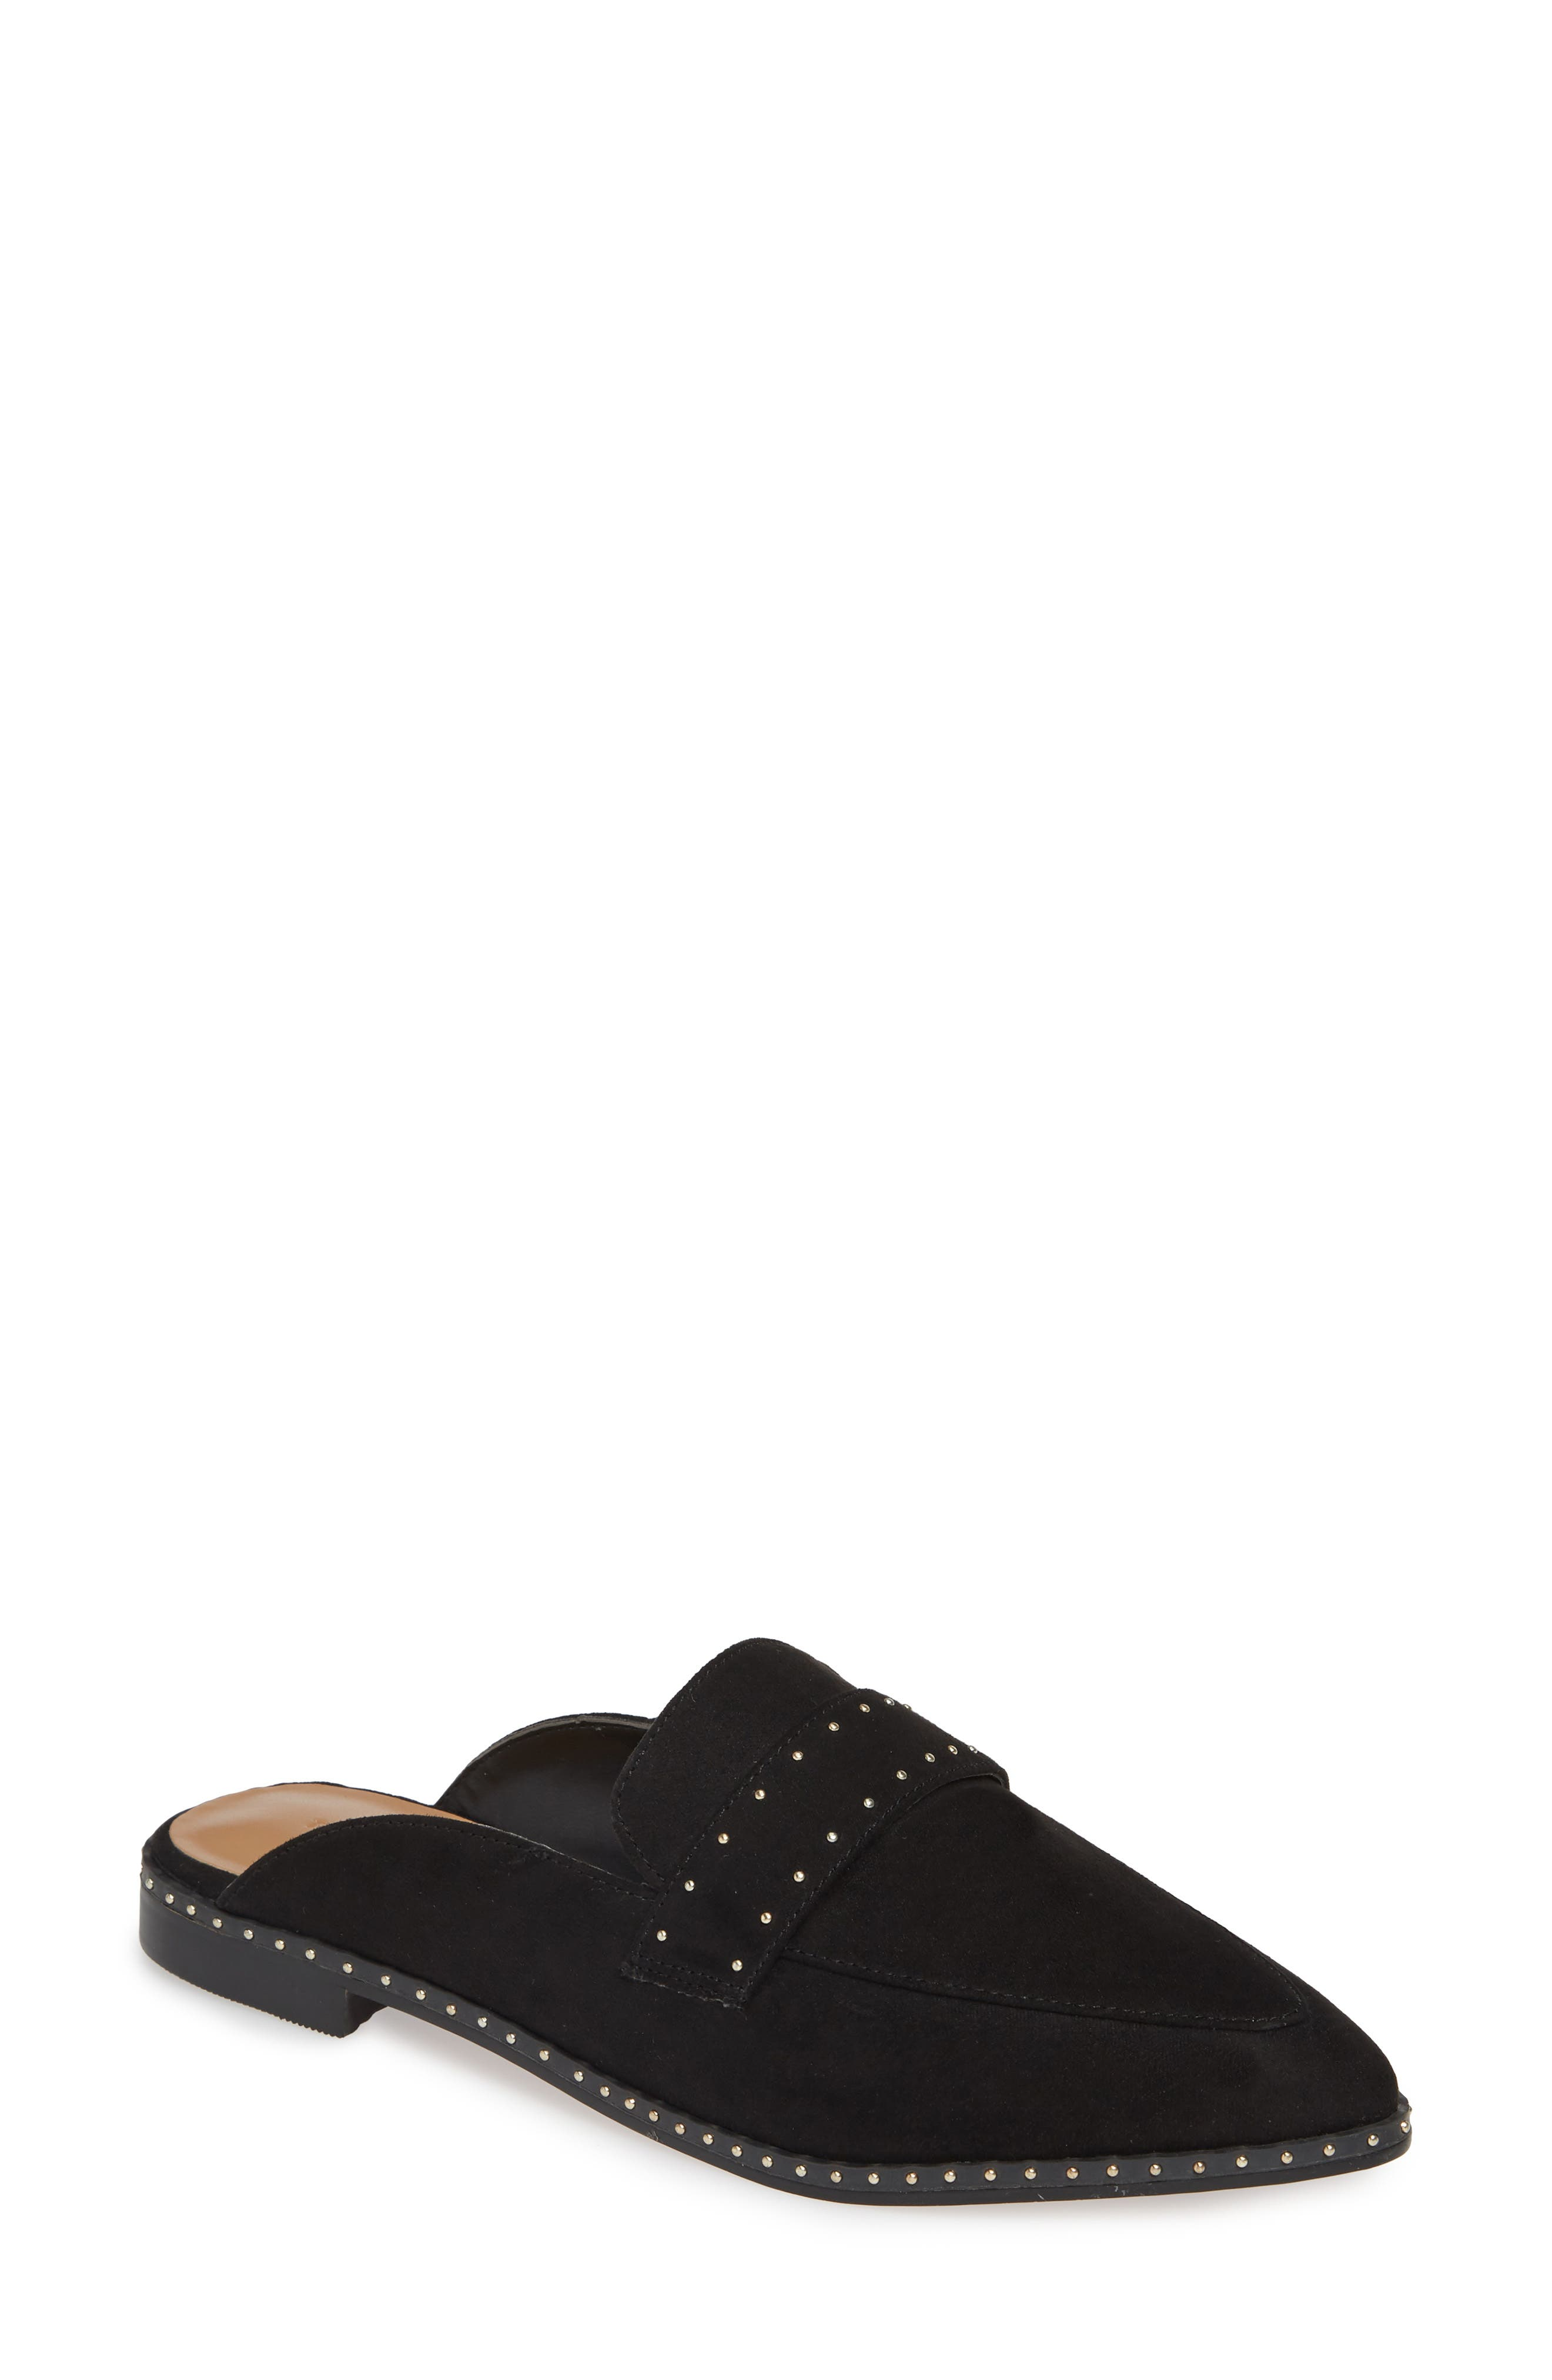 Lara Studded Loafer Mule, Main, color, BLACK